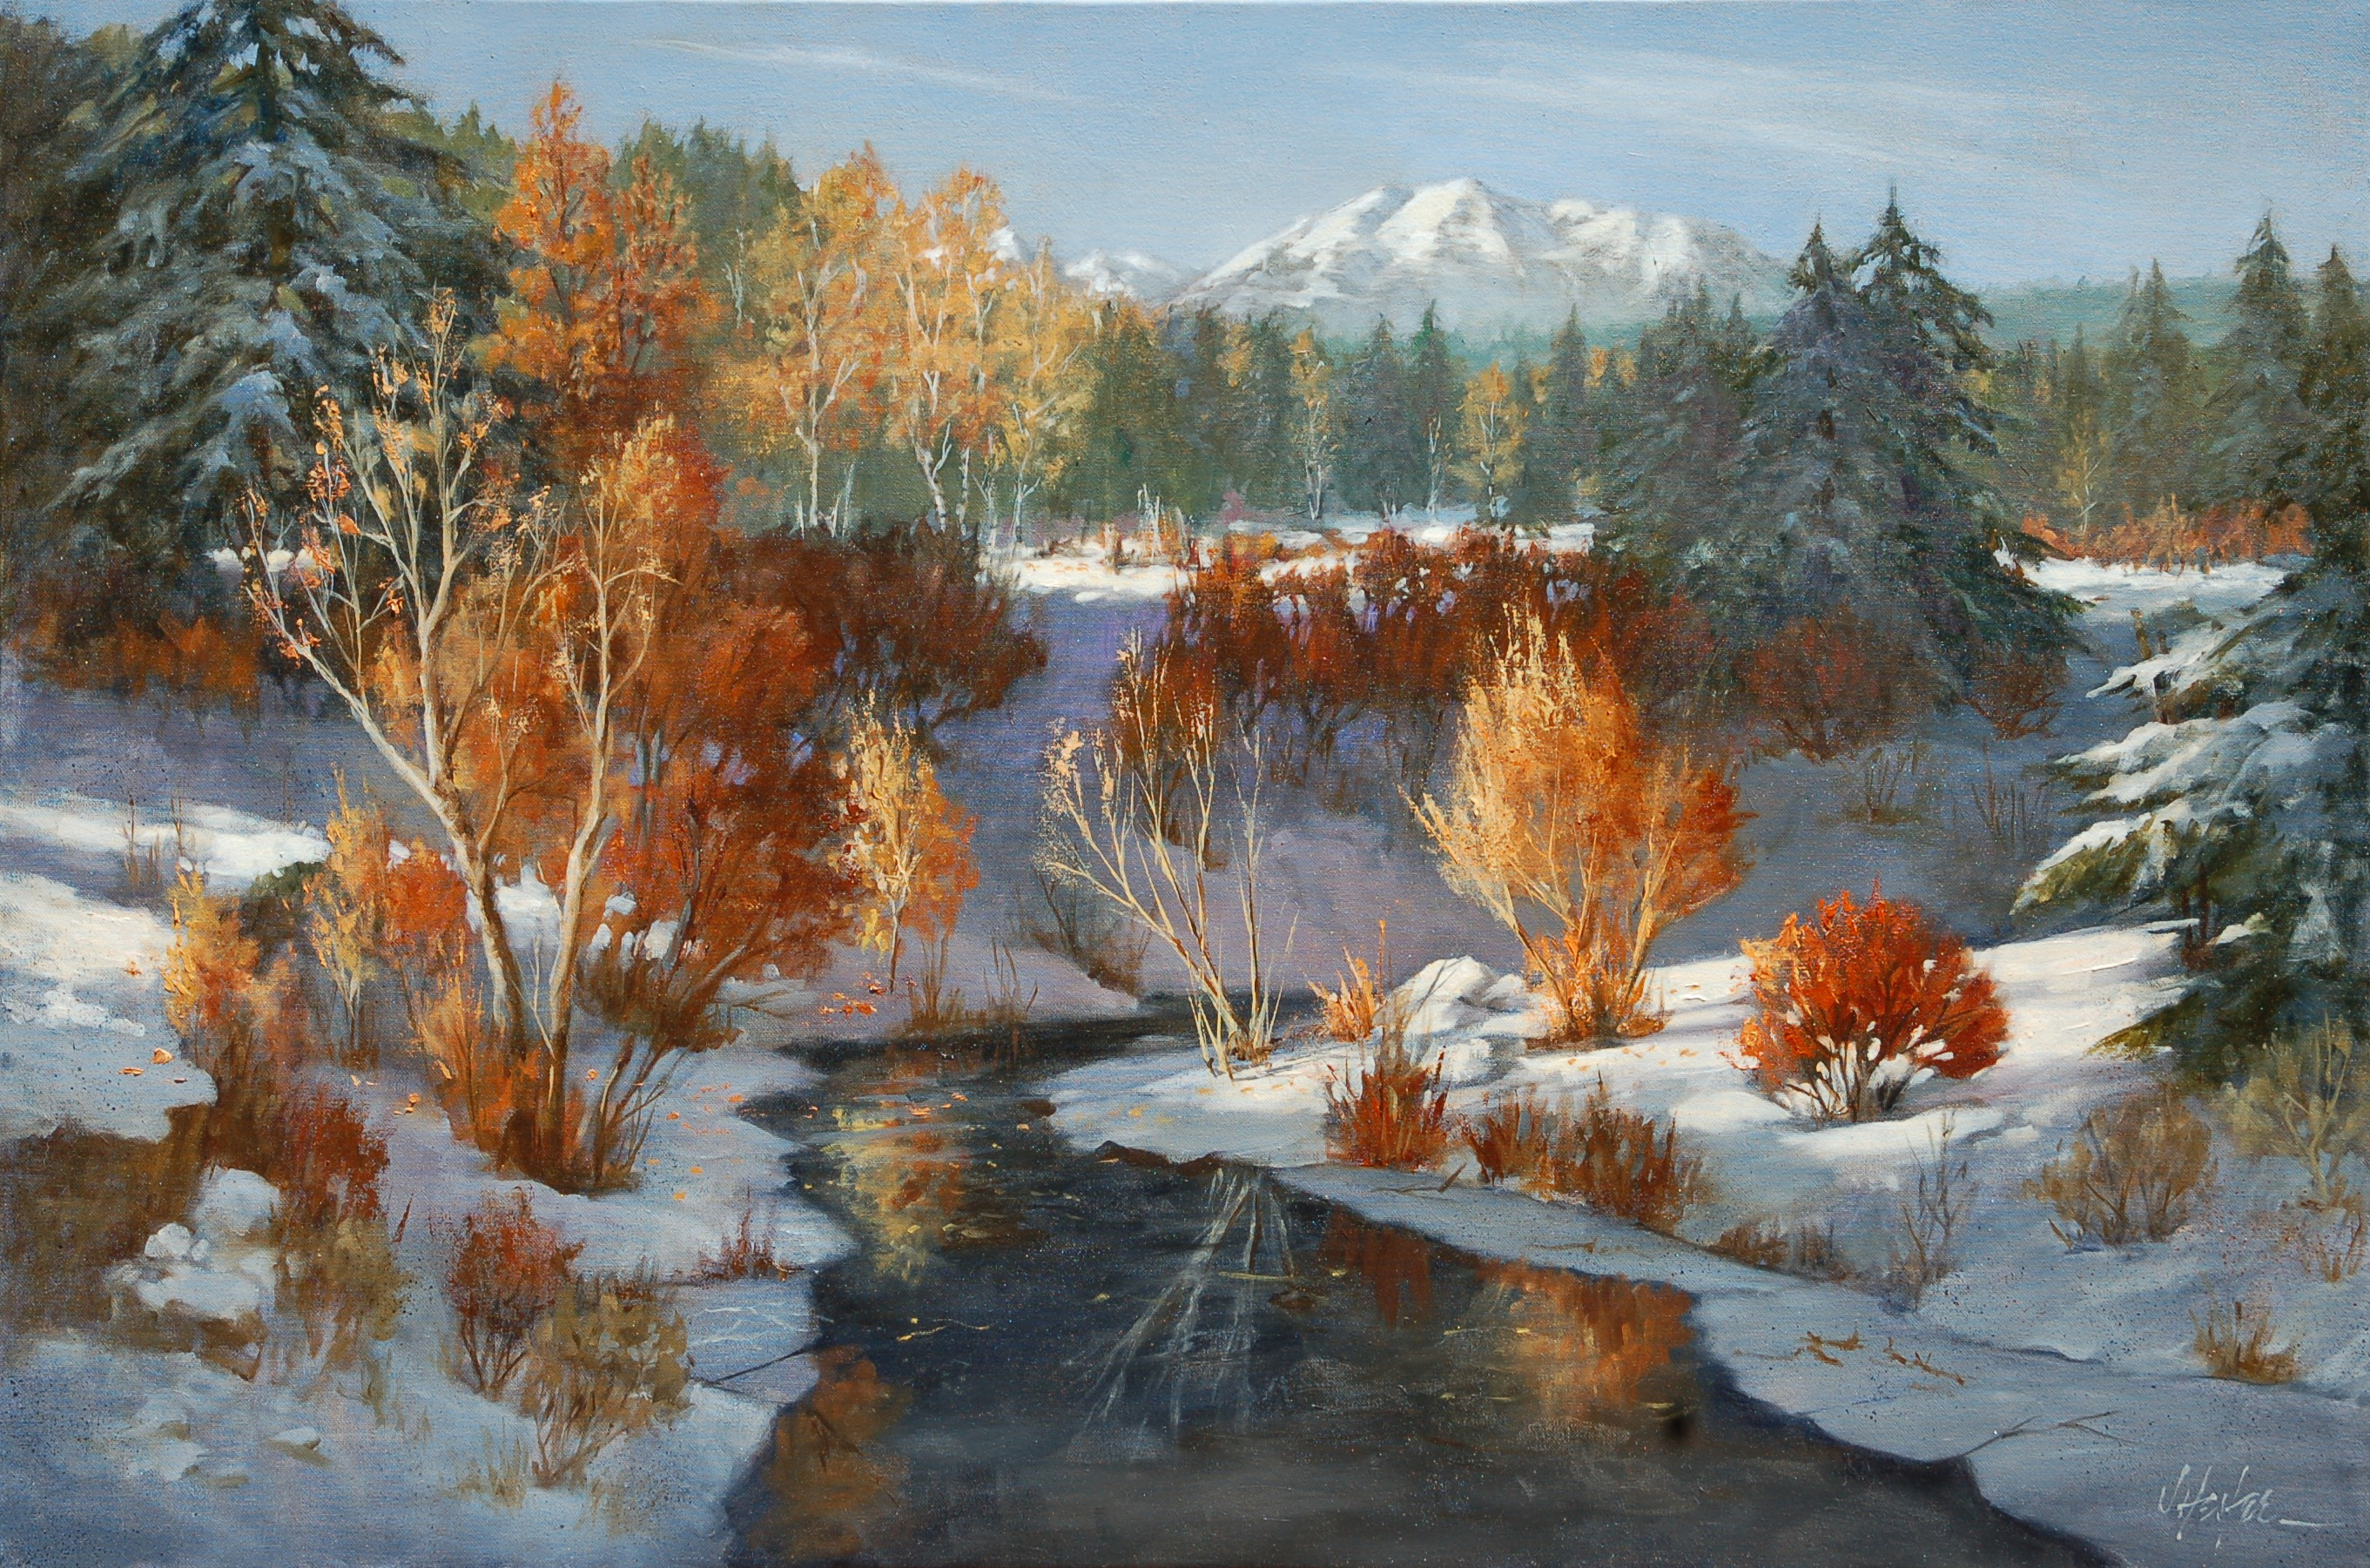 """Winter`s Glory""  -  24"" x 36"" Original Painting by J Hester"